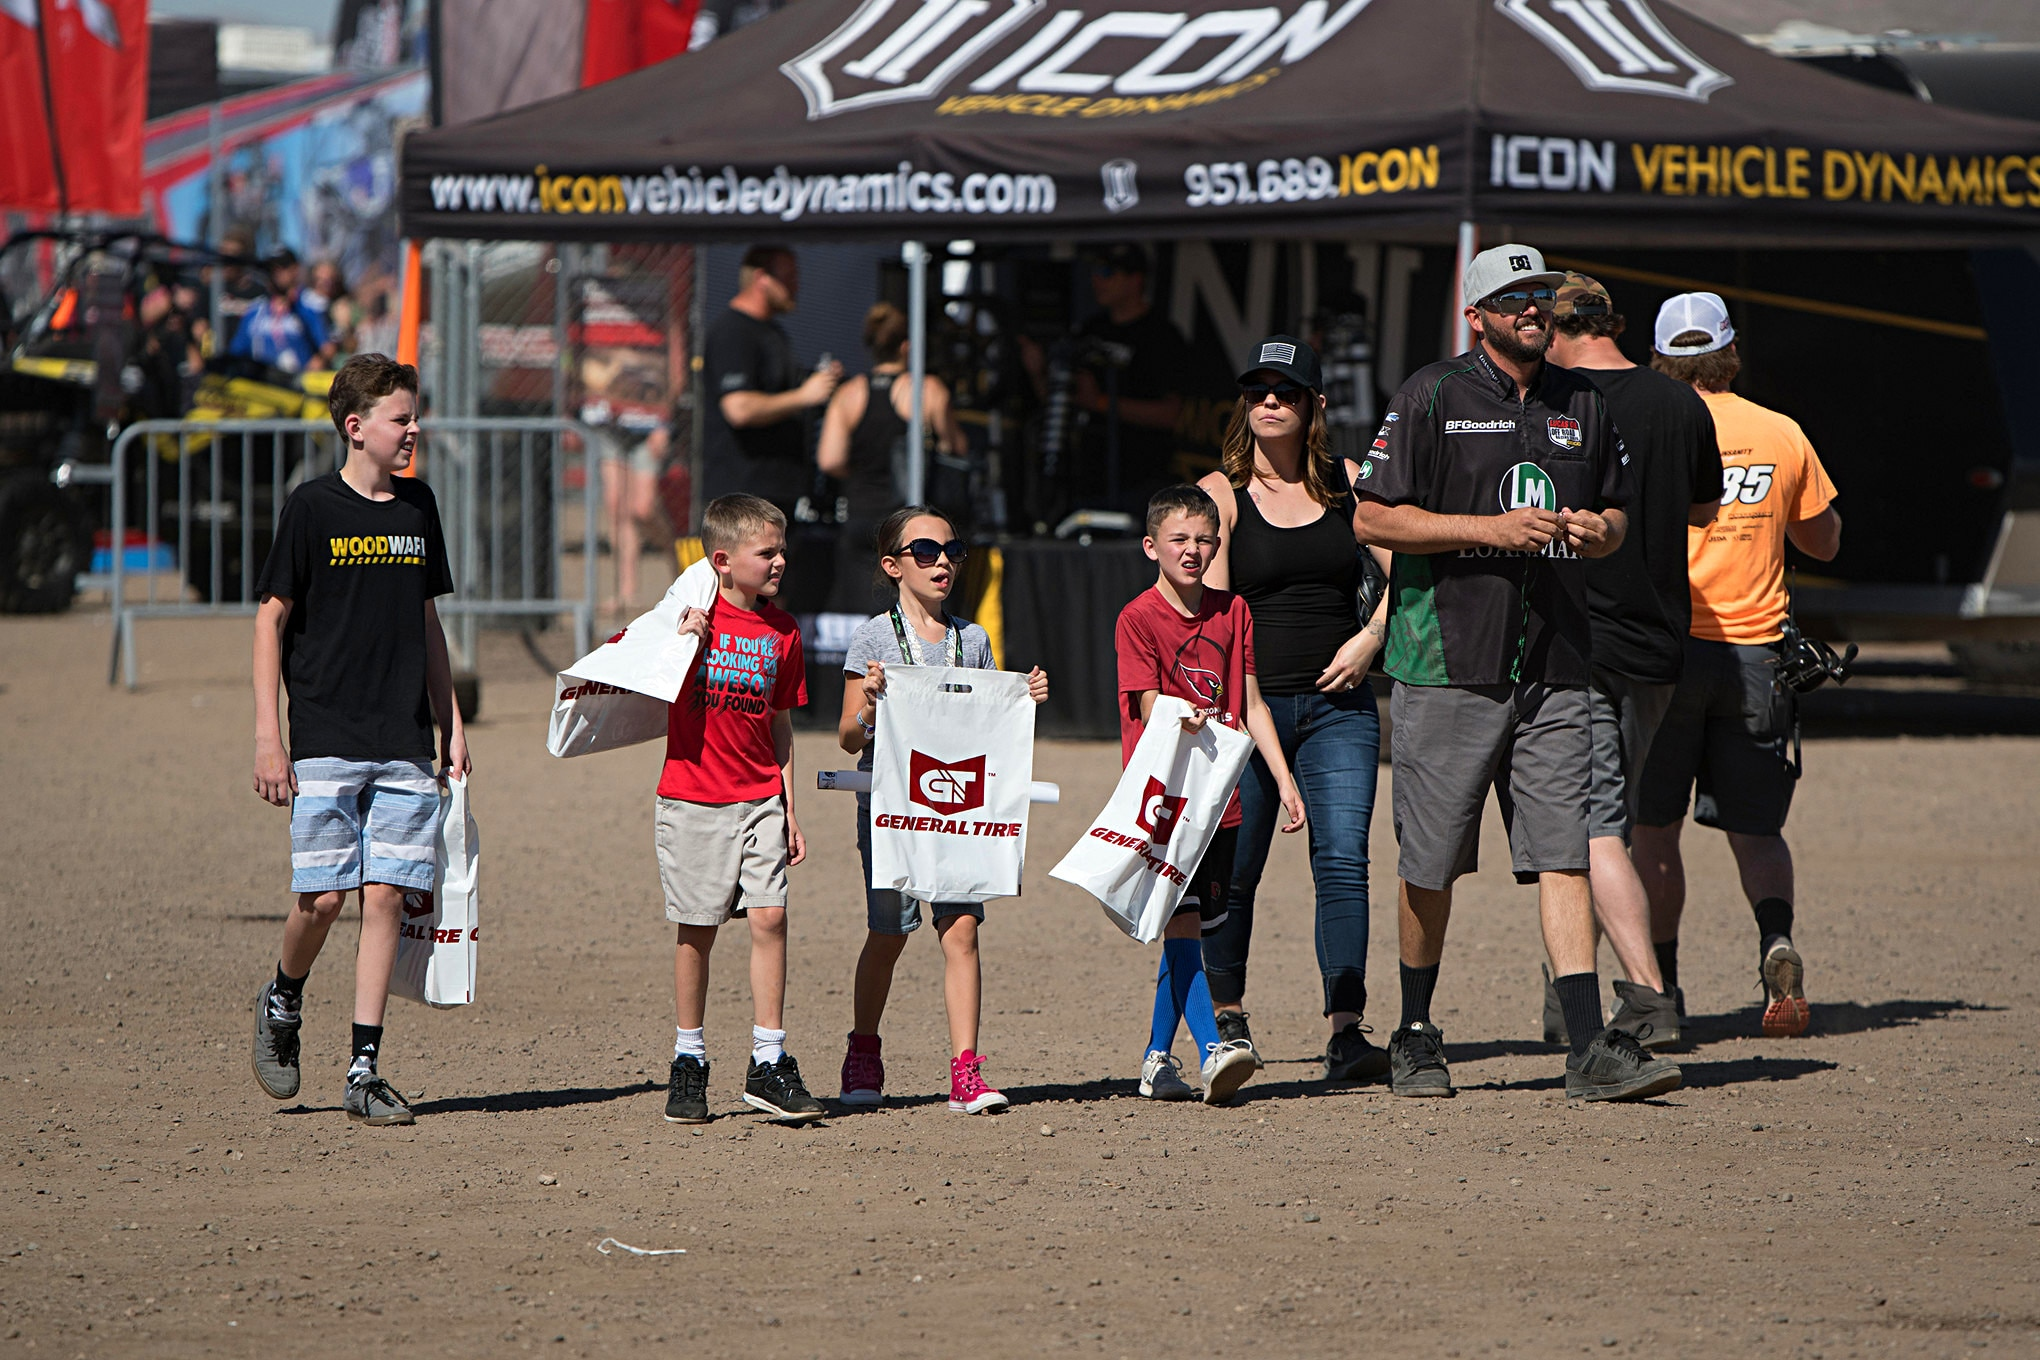 Family time spent filling goody bags from all the free merchandise is the best! LOORRS is family fun at its best.